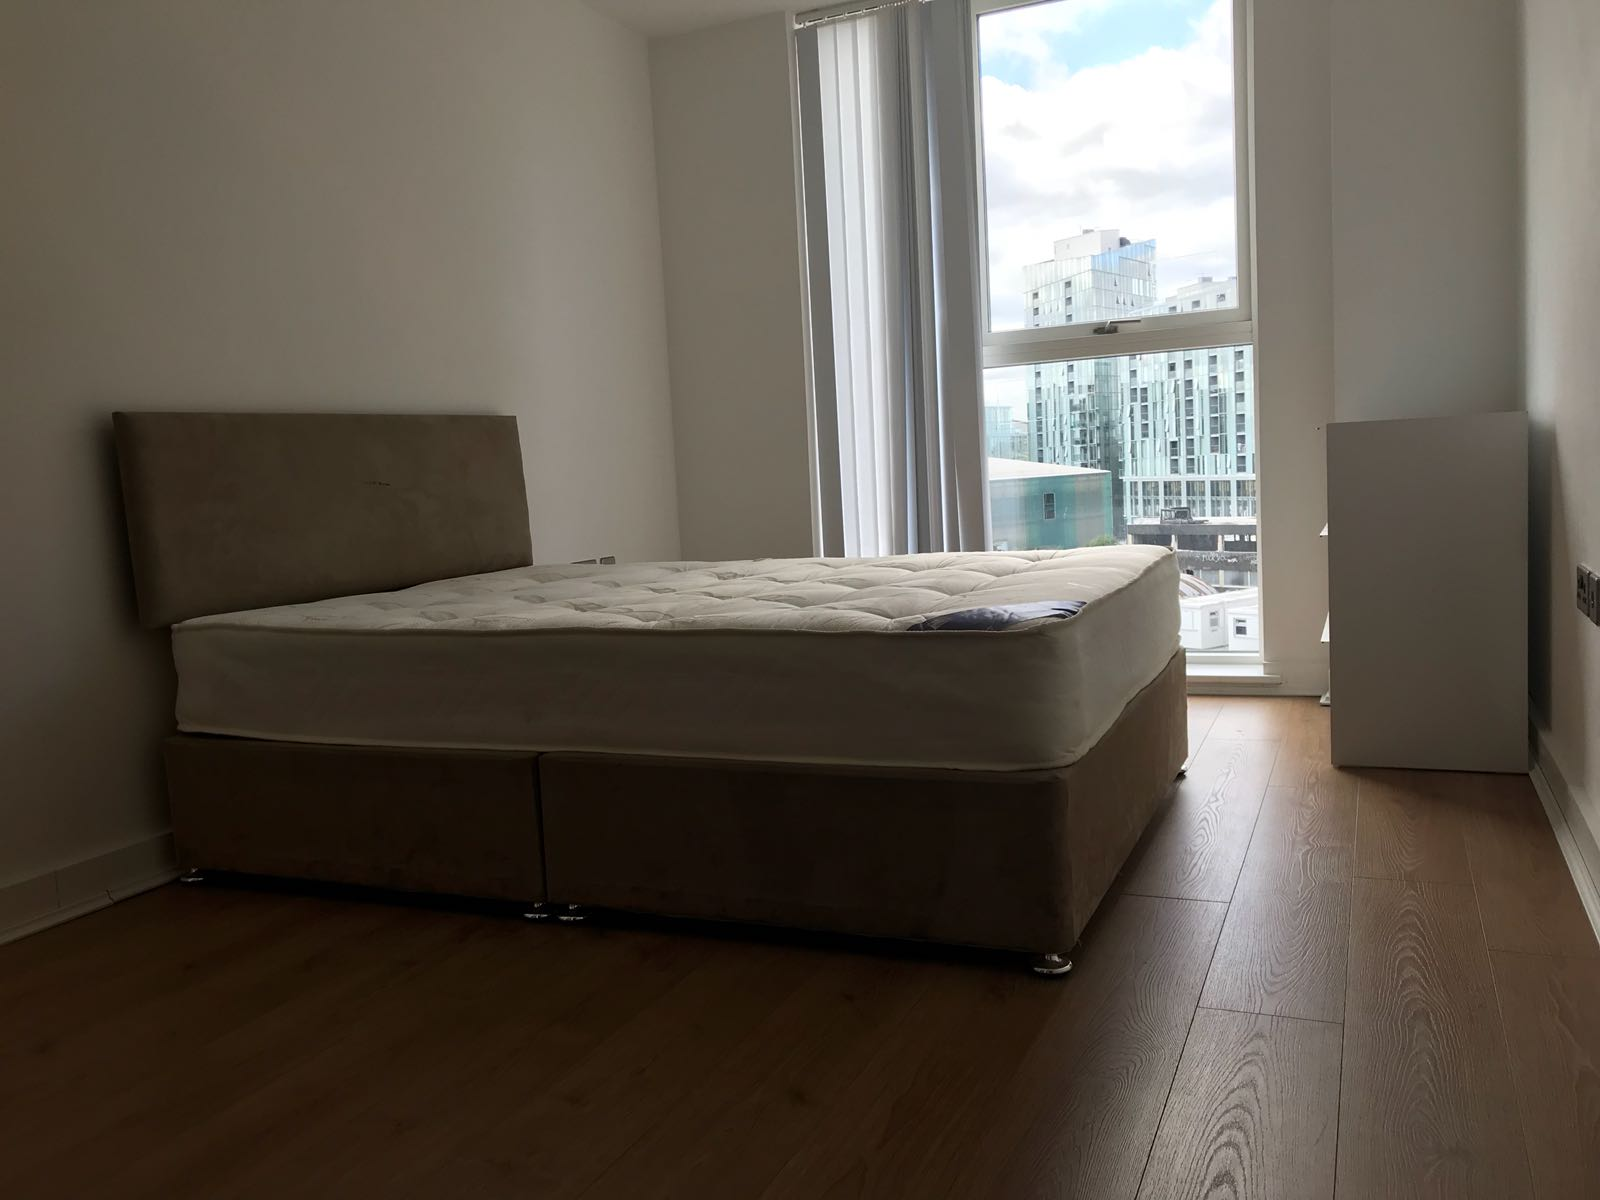 1 room in Greenwich, London, SE10 9FA RoomsLocal image